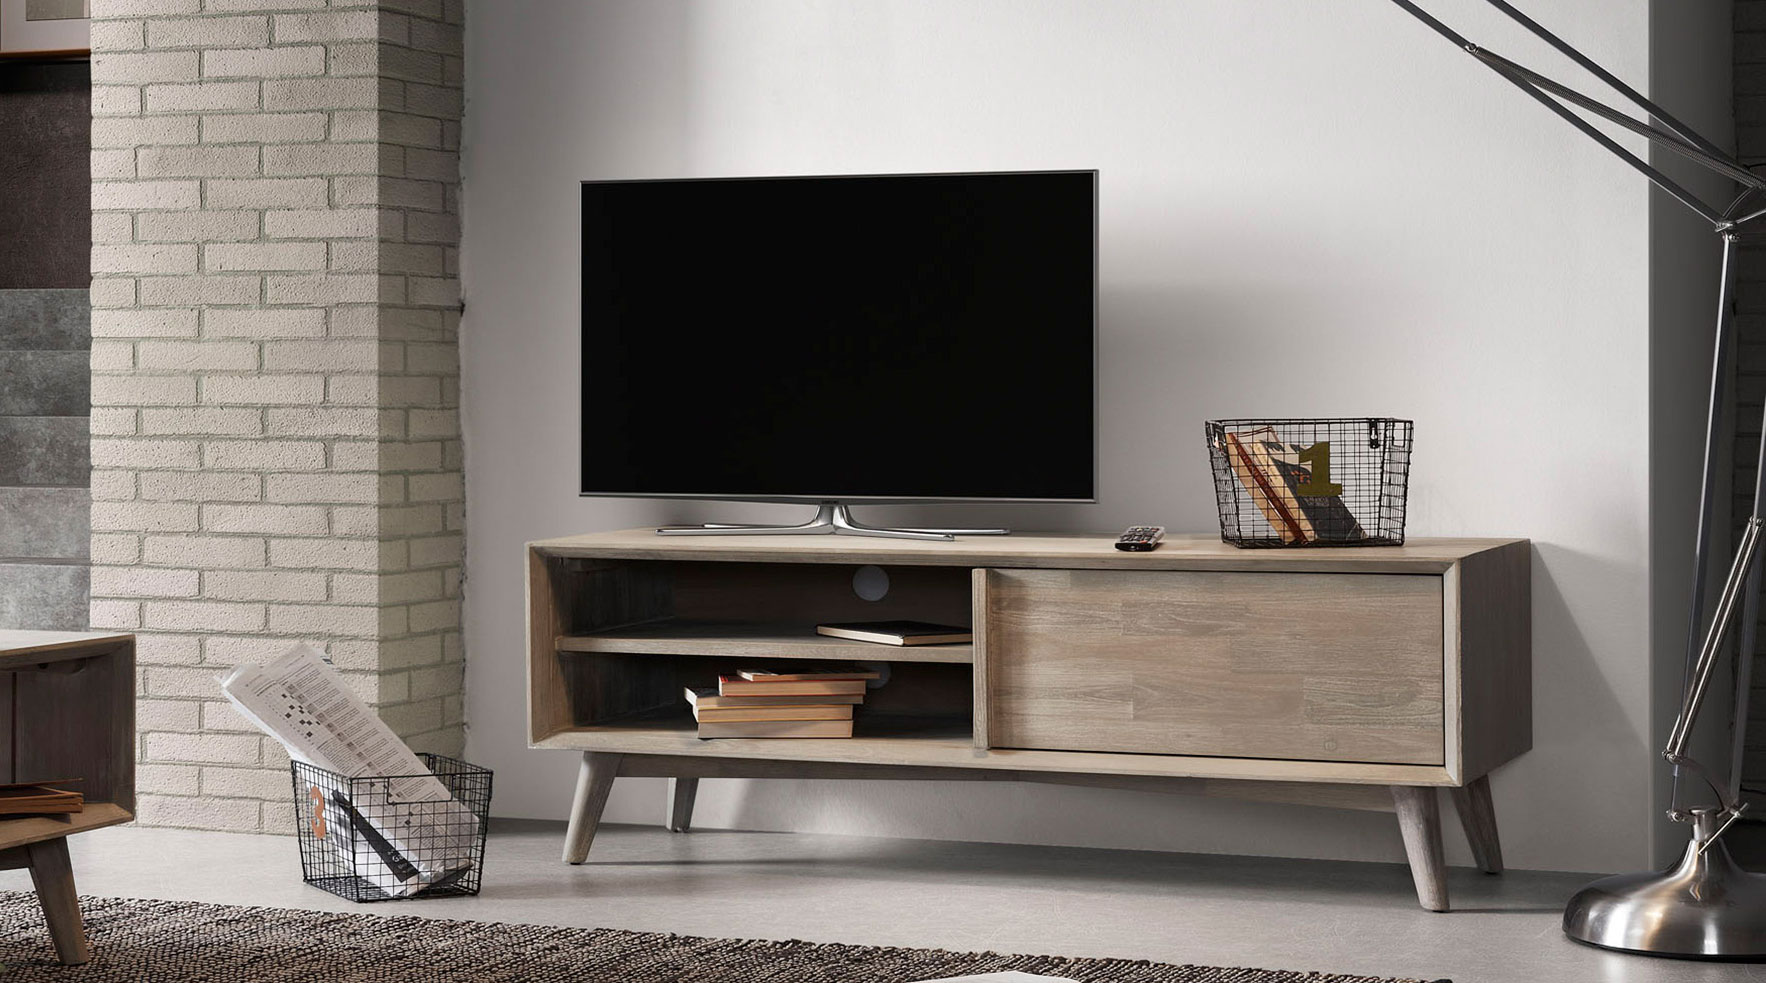 Mueble tv madera n rdica derwon 2 no disponible en for Muebles para tv conforama